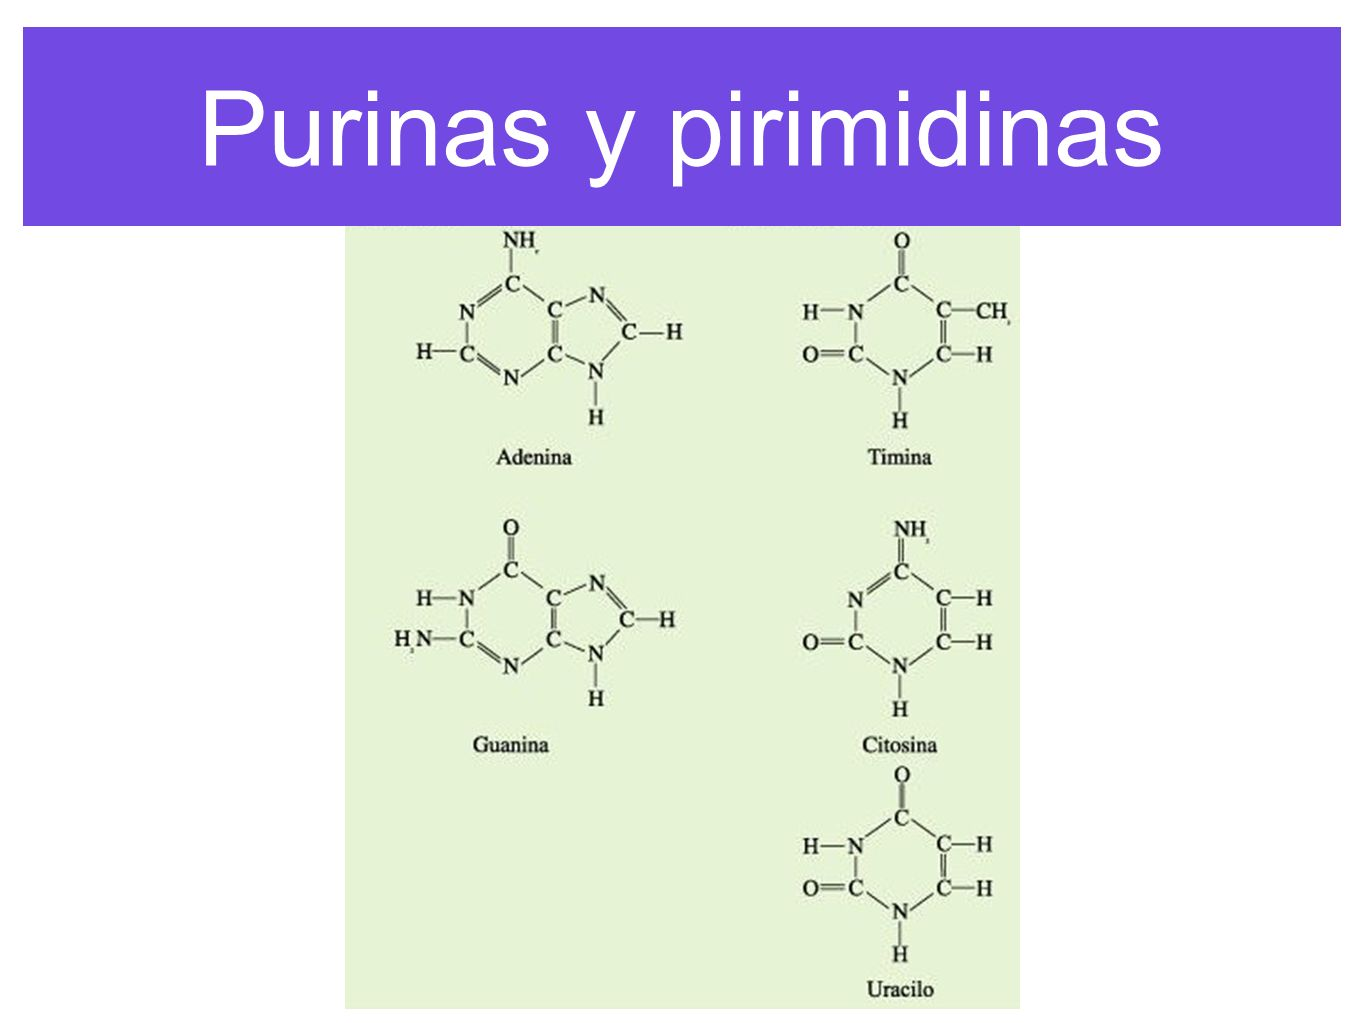 Purinas y pirimidinas